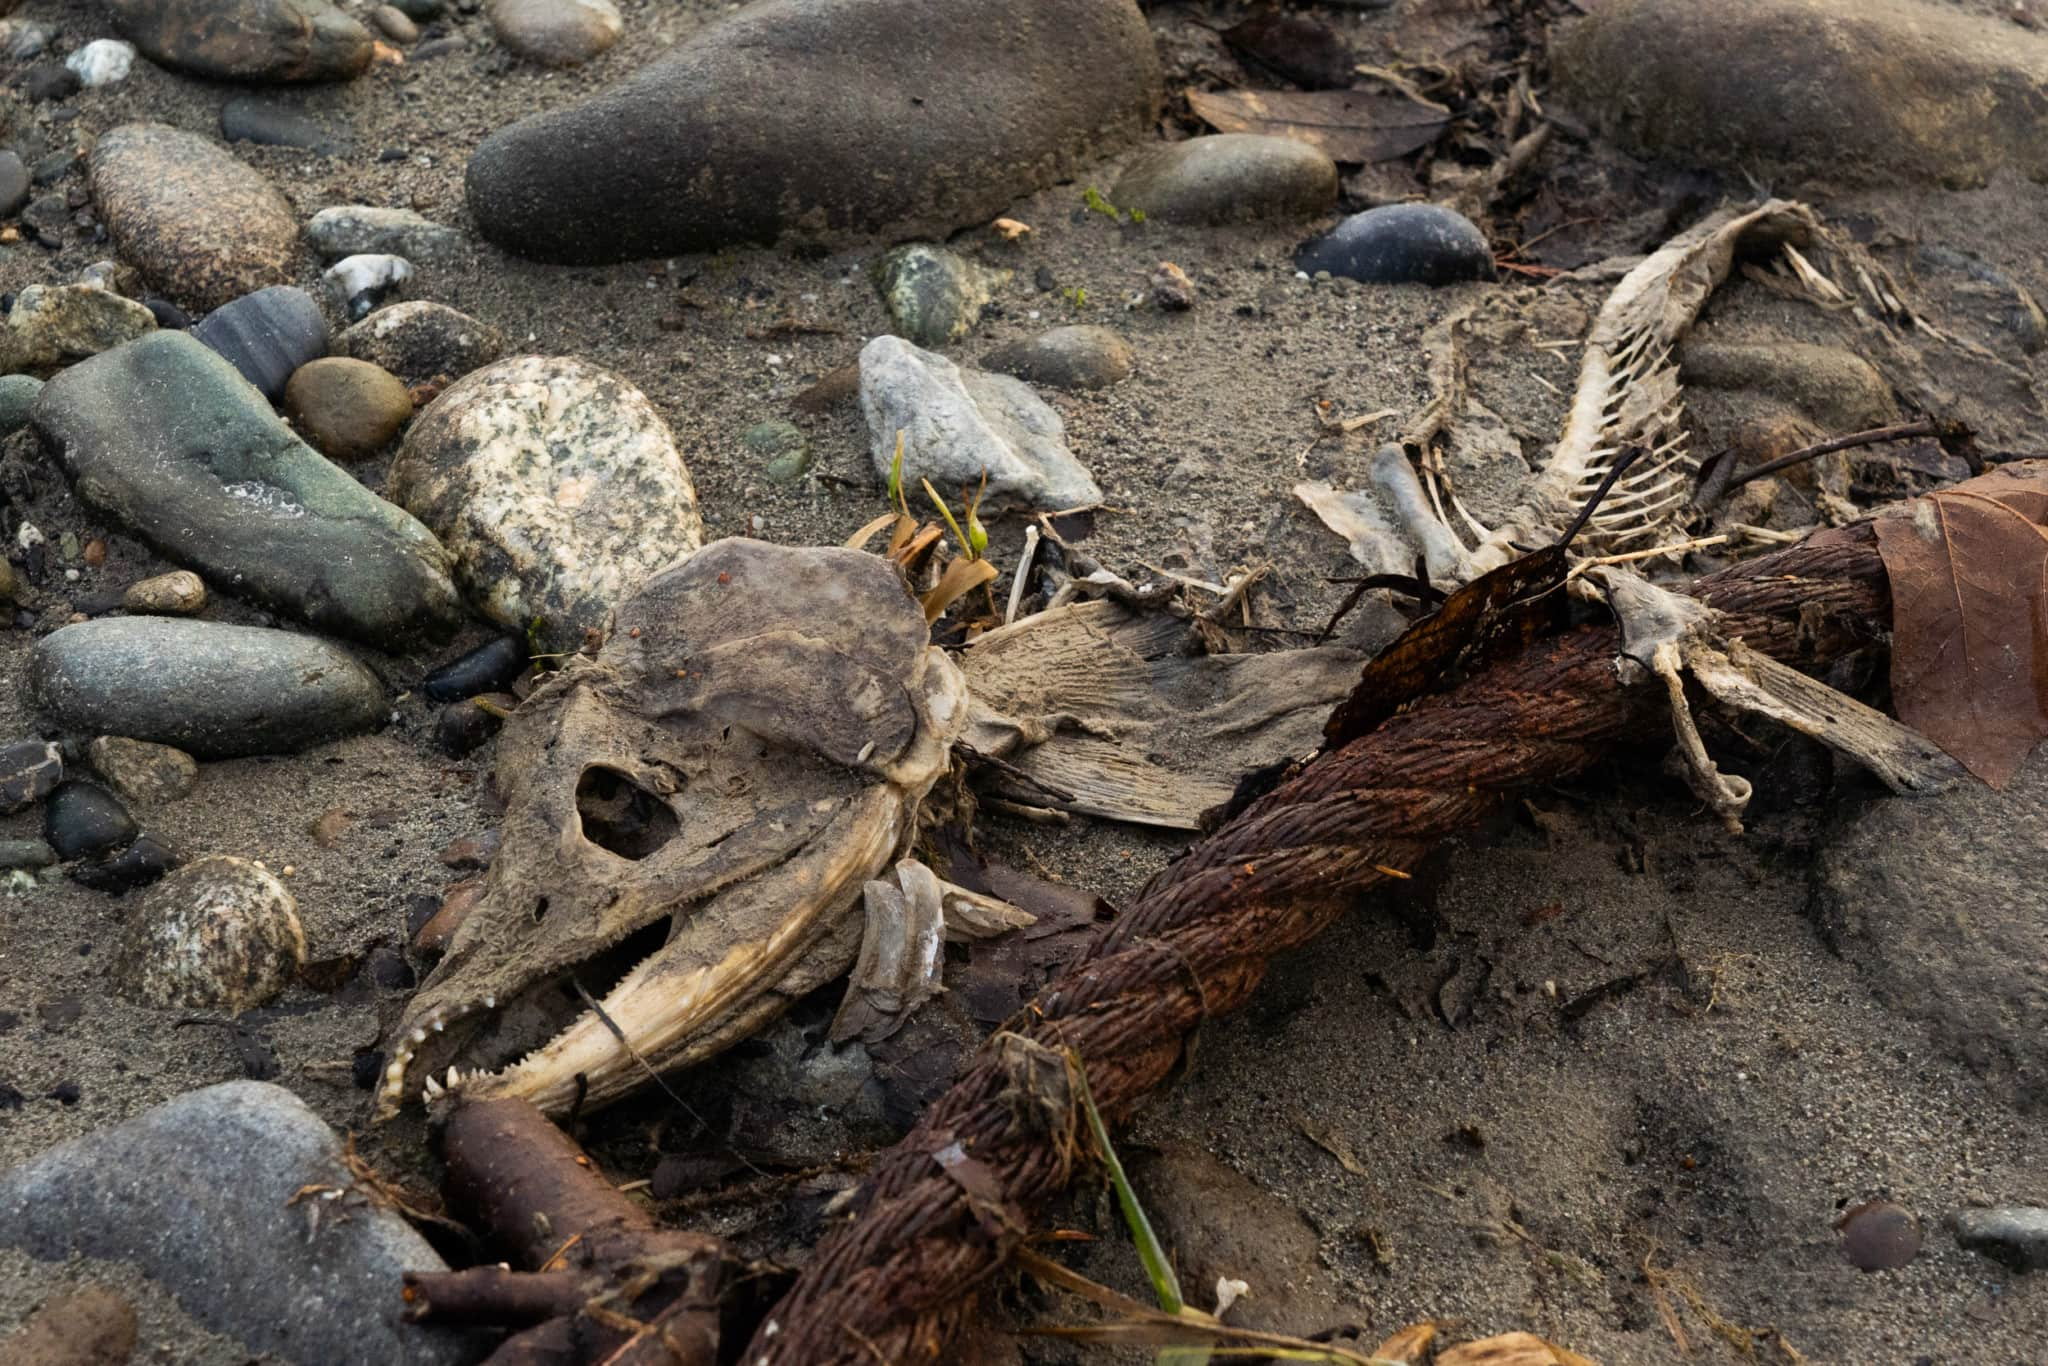 The remains of a spawned-out salmon on the sandy bank of the Skagit River. The metal cord is a remnant of former logging activities in the area. Photo: Fernando Lessa / The Narwhal